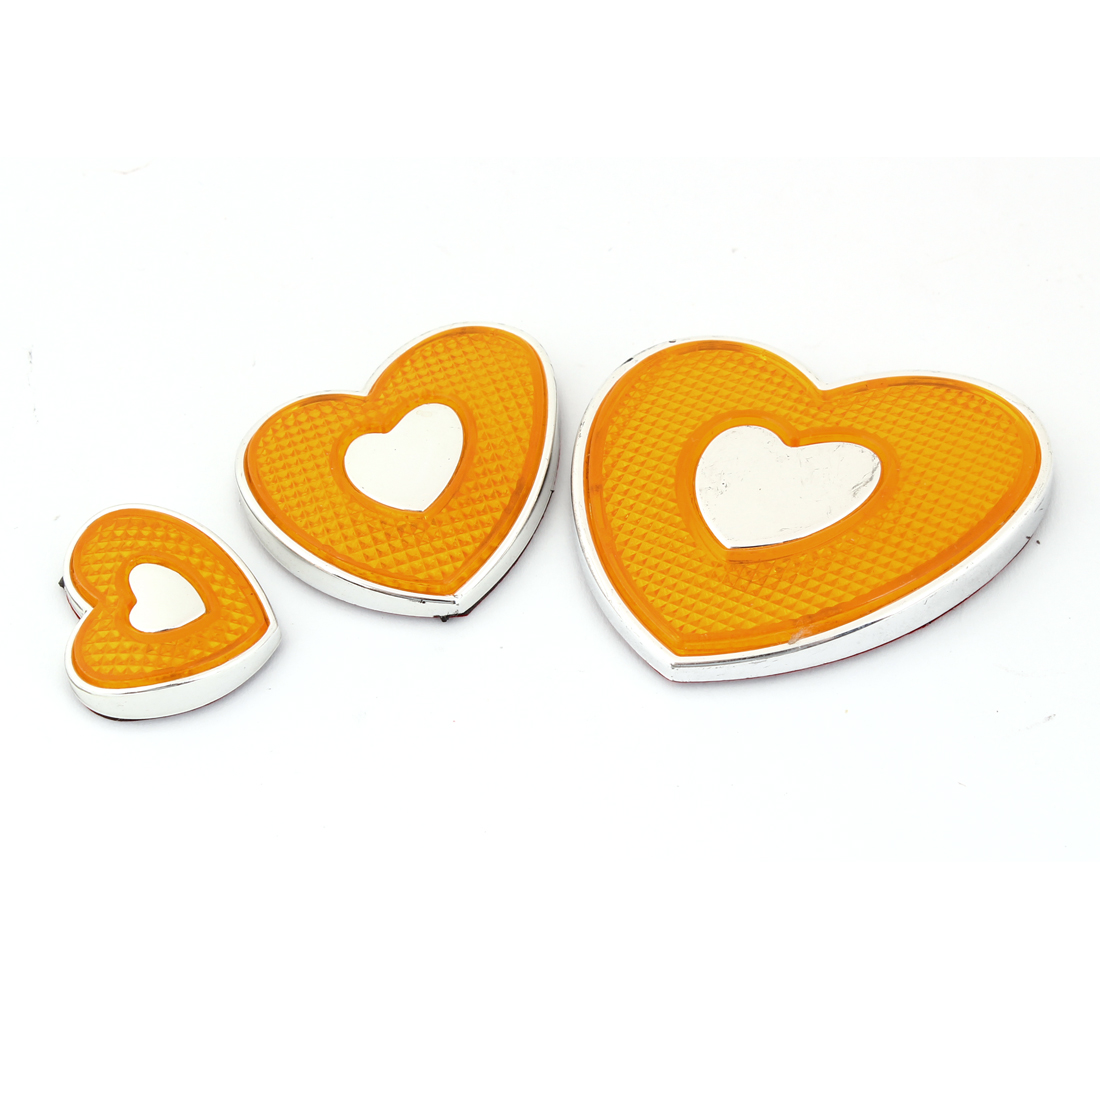 3 Pieces Silver Tone Yellow Heart-shaped Auto Car Emblem Decal Badge Stickers